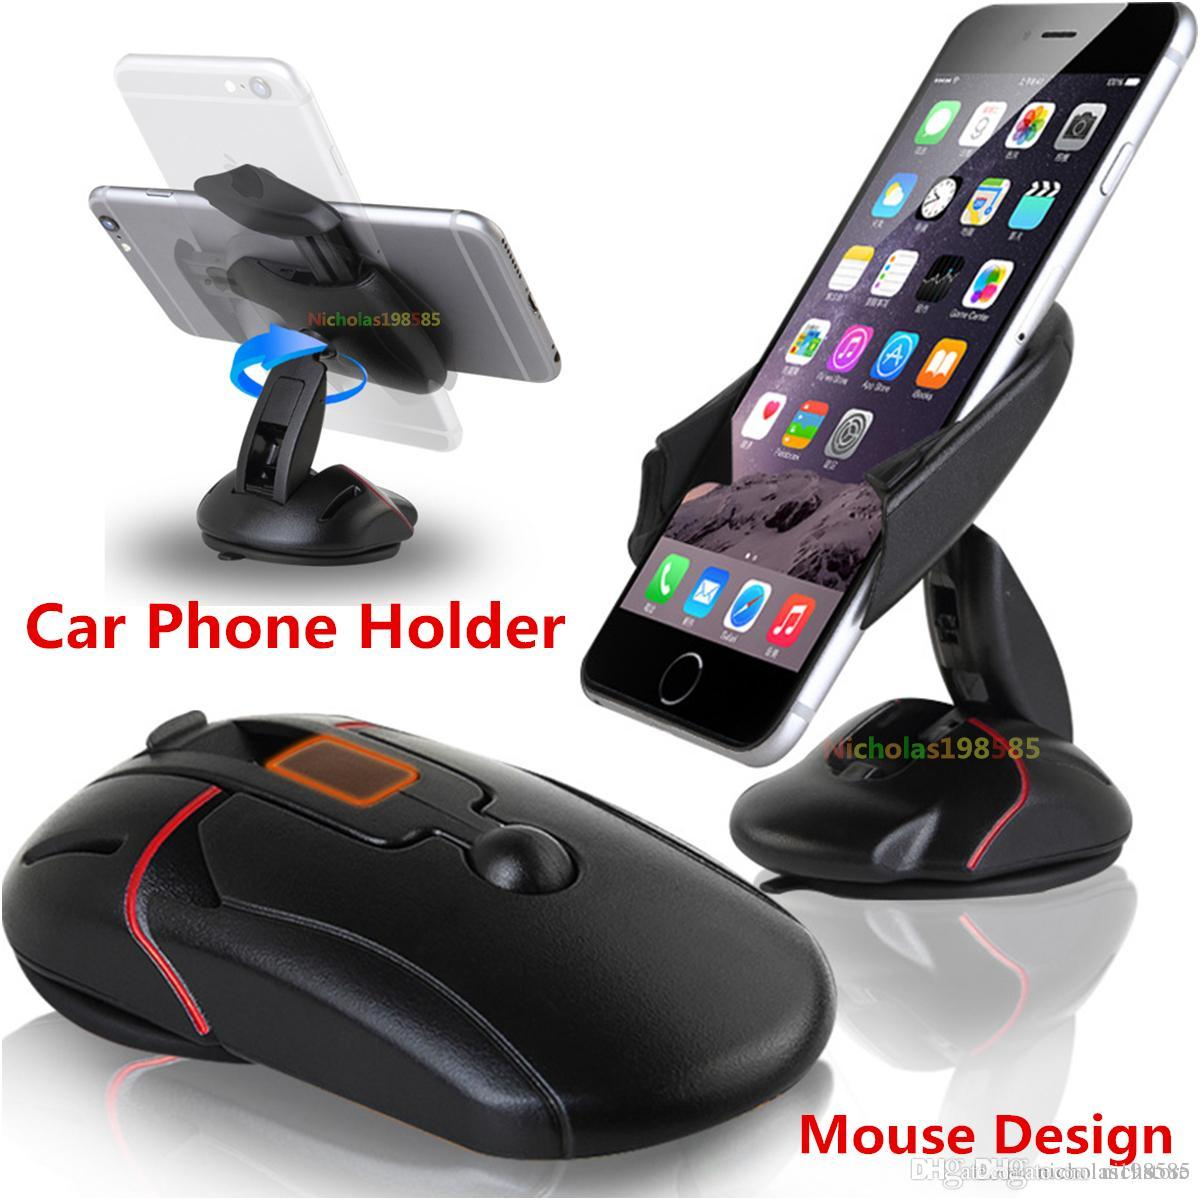 2019 2017 Luxury Car Phone Holder Gps Accessories Suction Cup Mouse